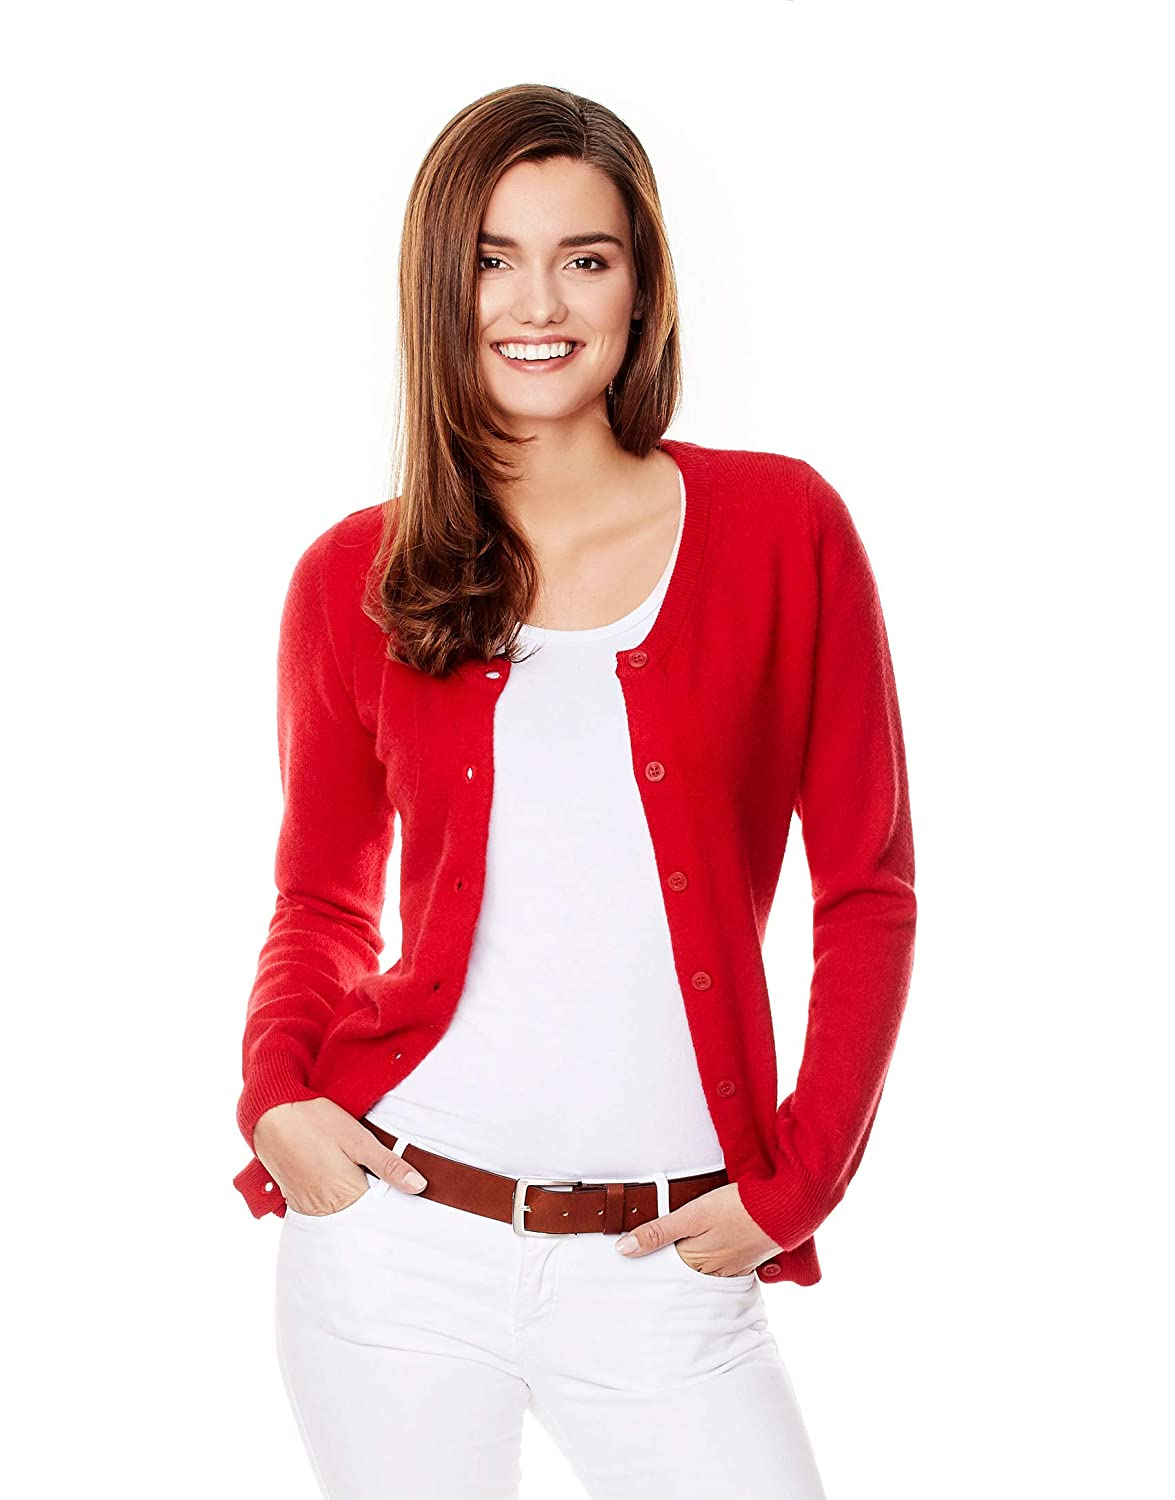 23ecb1536dfced Vincenzo Boretti Women s Pull-Over Knitted Jumper Regular-fit Long Sleeve  Rib v-Neck Plain Colour Stylish Warm Smart-Casual Ladies